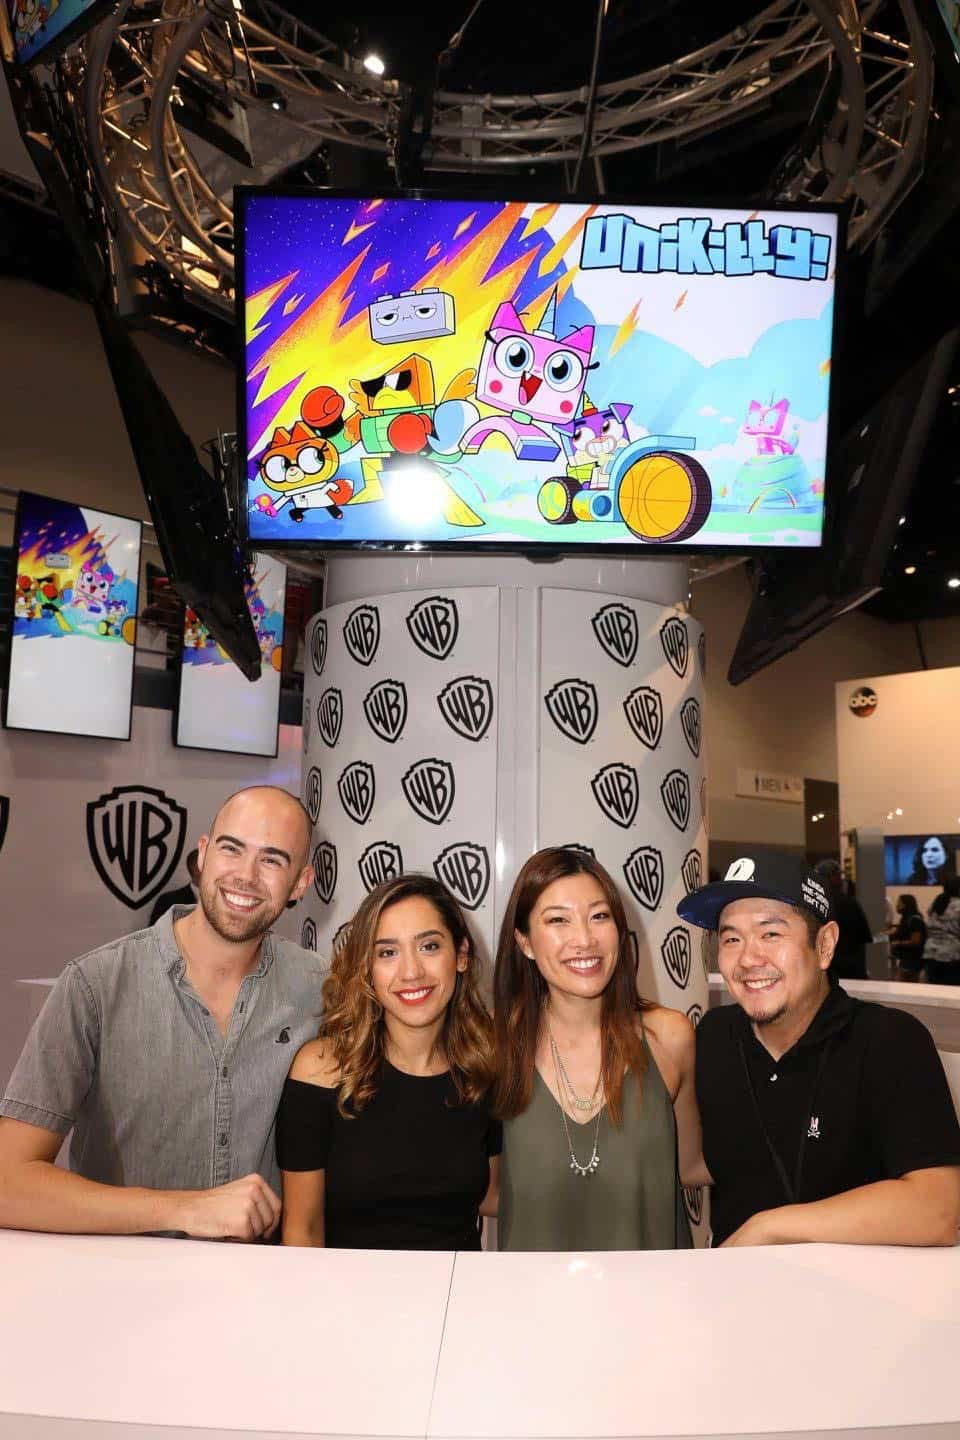 The UNIKITTY! team spreads the positive vibes at the Warner Bros. booth at Comic-Con 2017 on Thursday, July 20. #WBSDCC (© 2017 WBEI. All Rights Reserved)